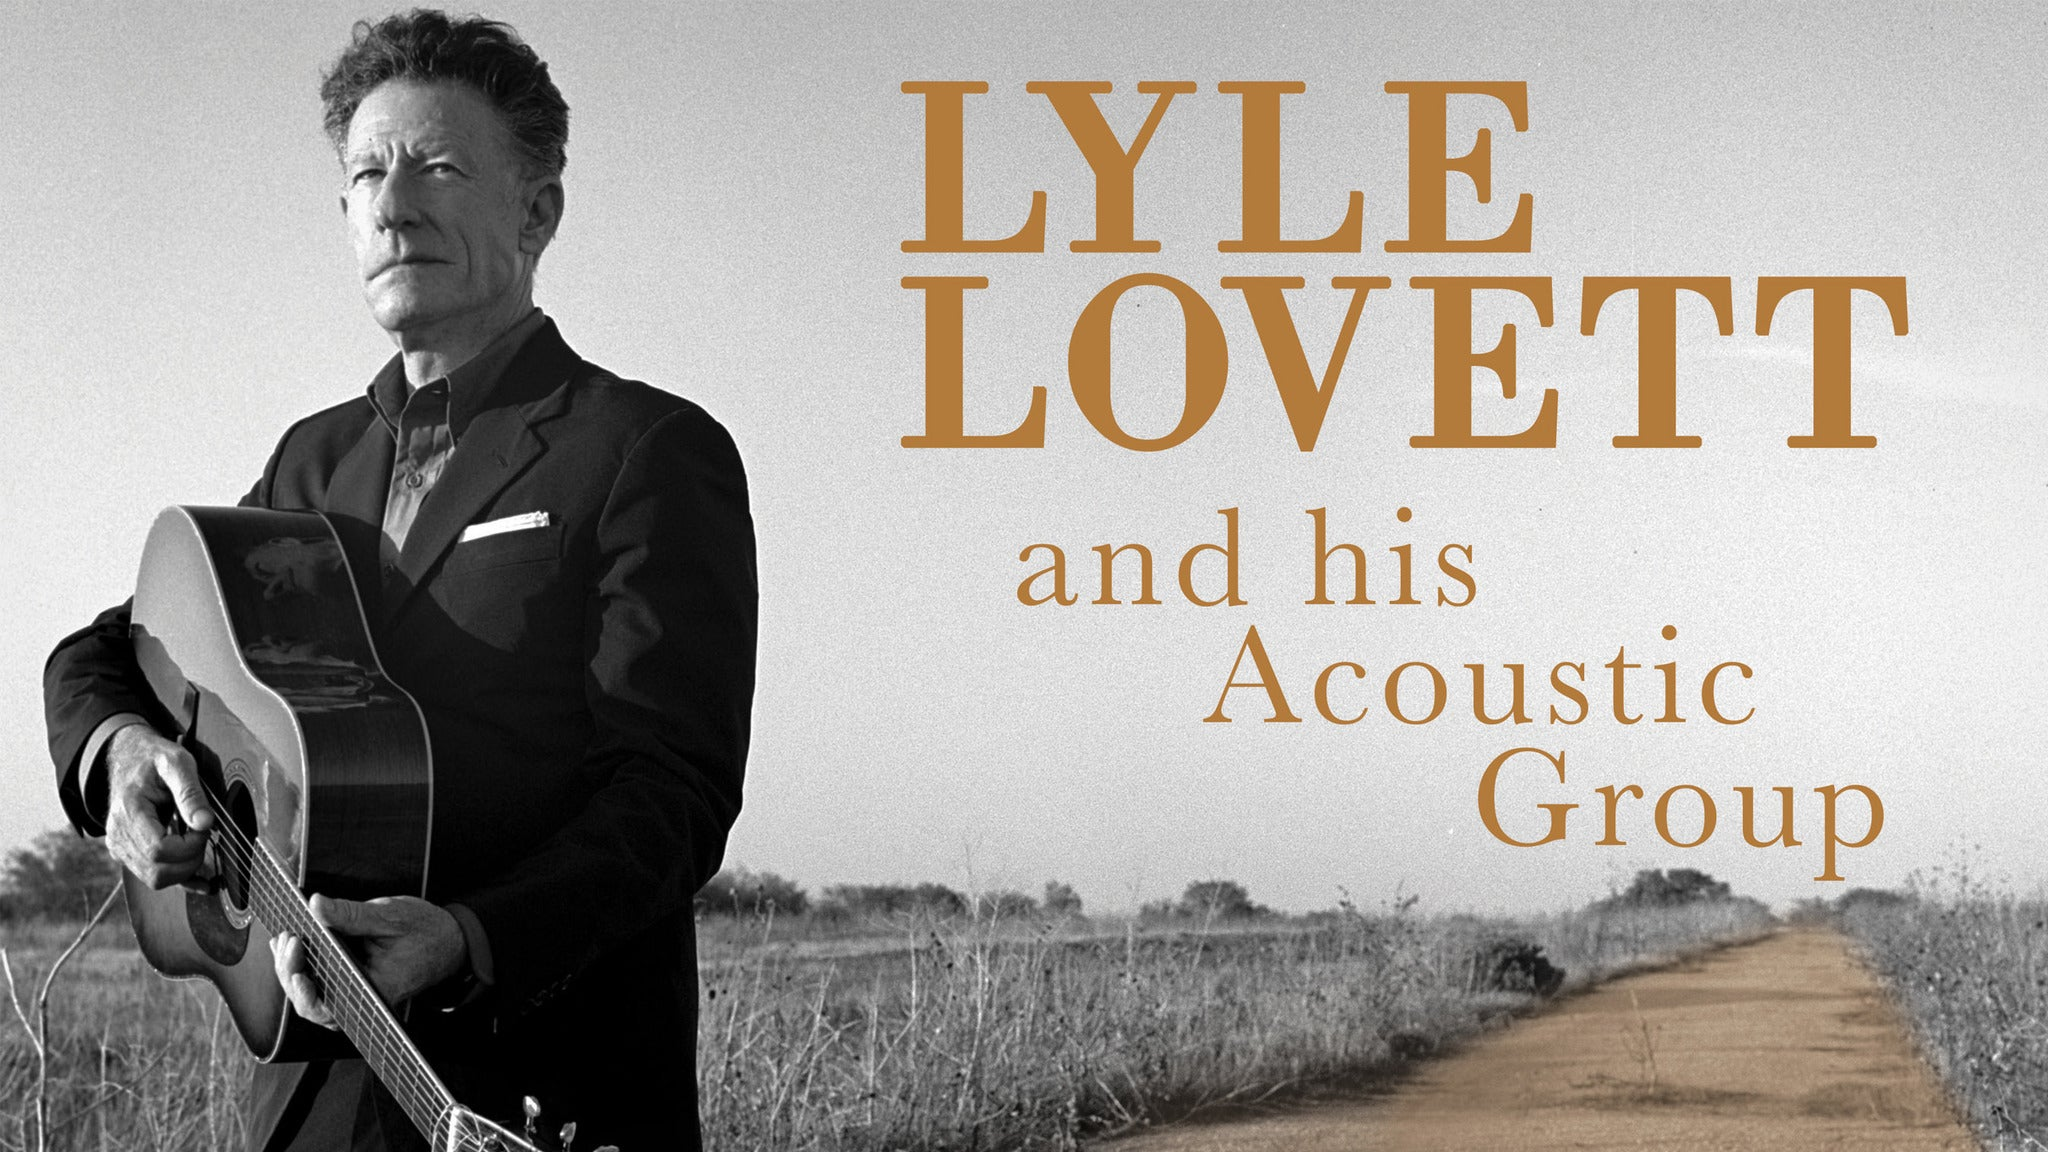 Lyle Lovett and his Acoustic Group at Uptown Theatre Napa